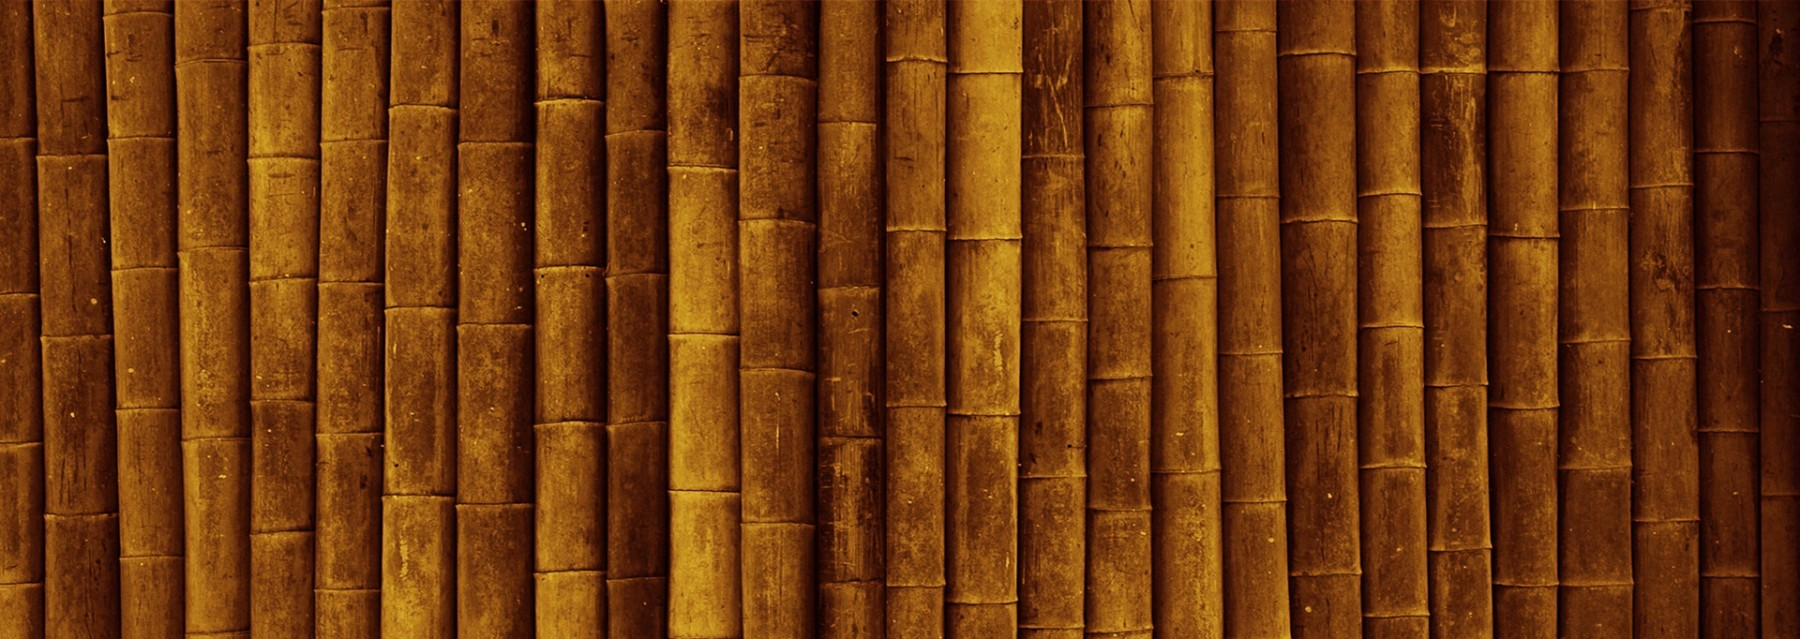 bambu_background